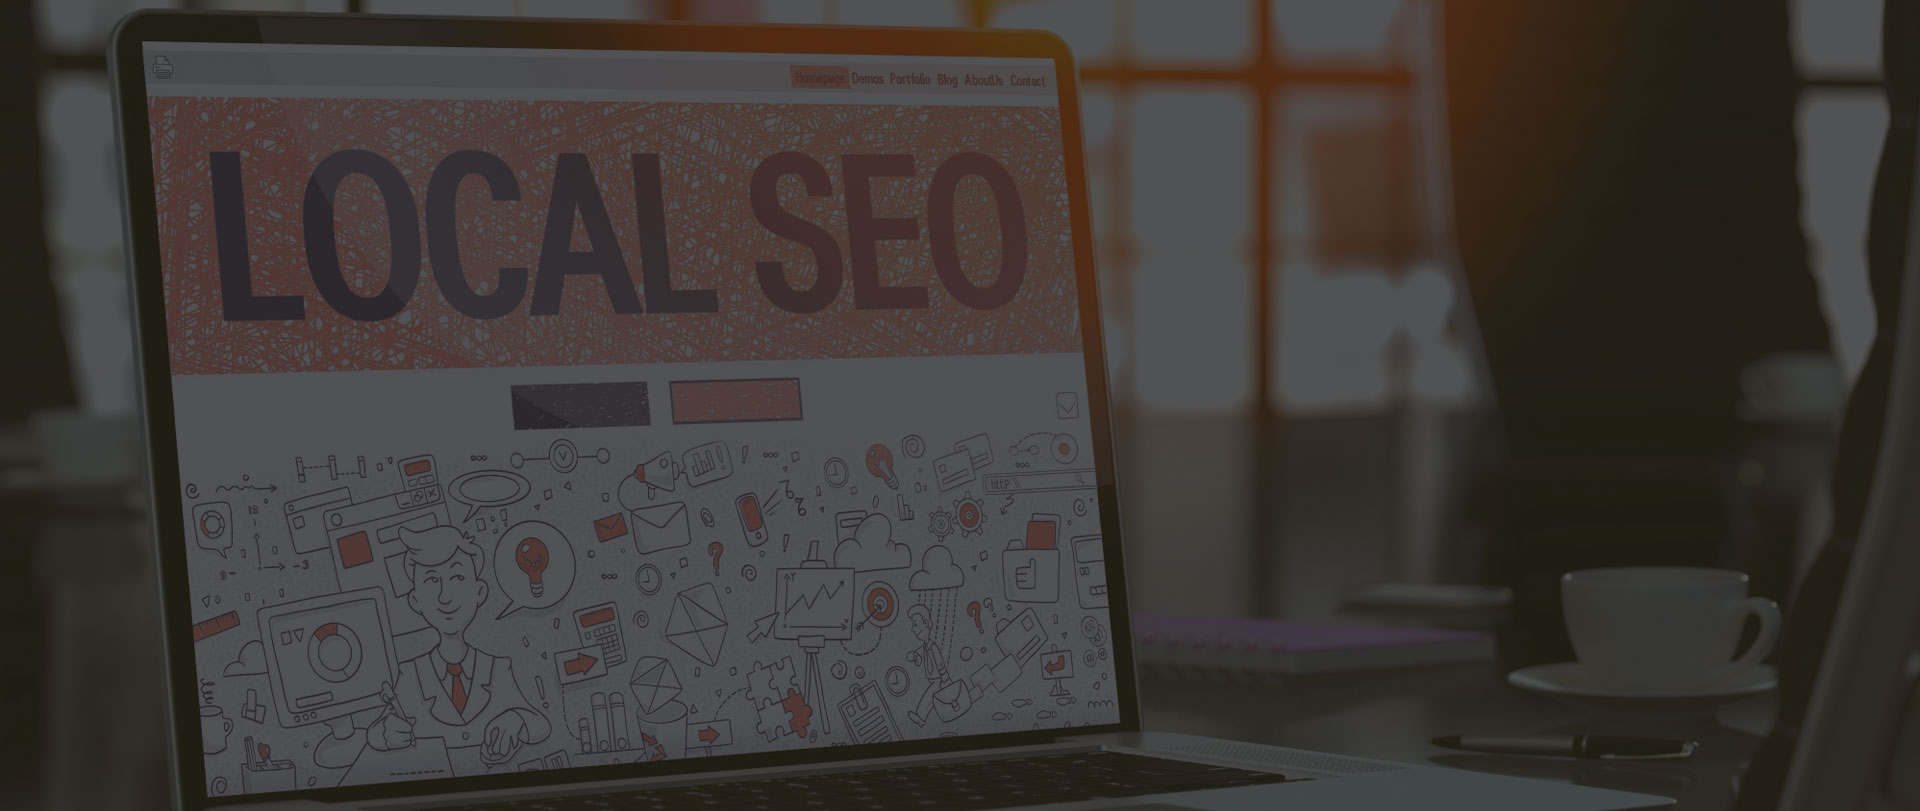 the SEO most common and efficient tools